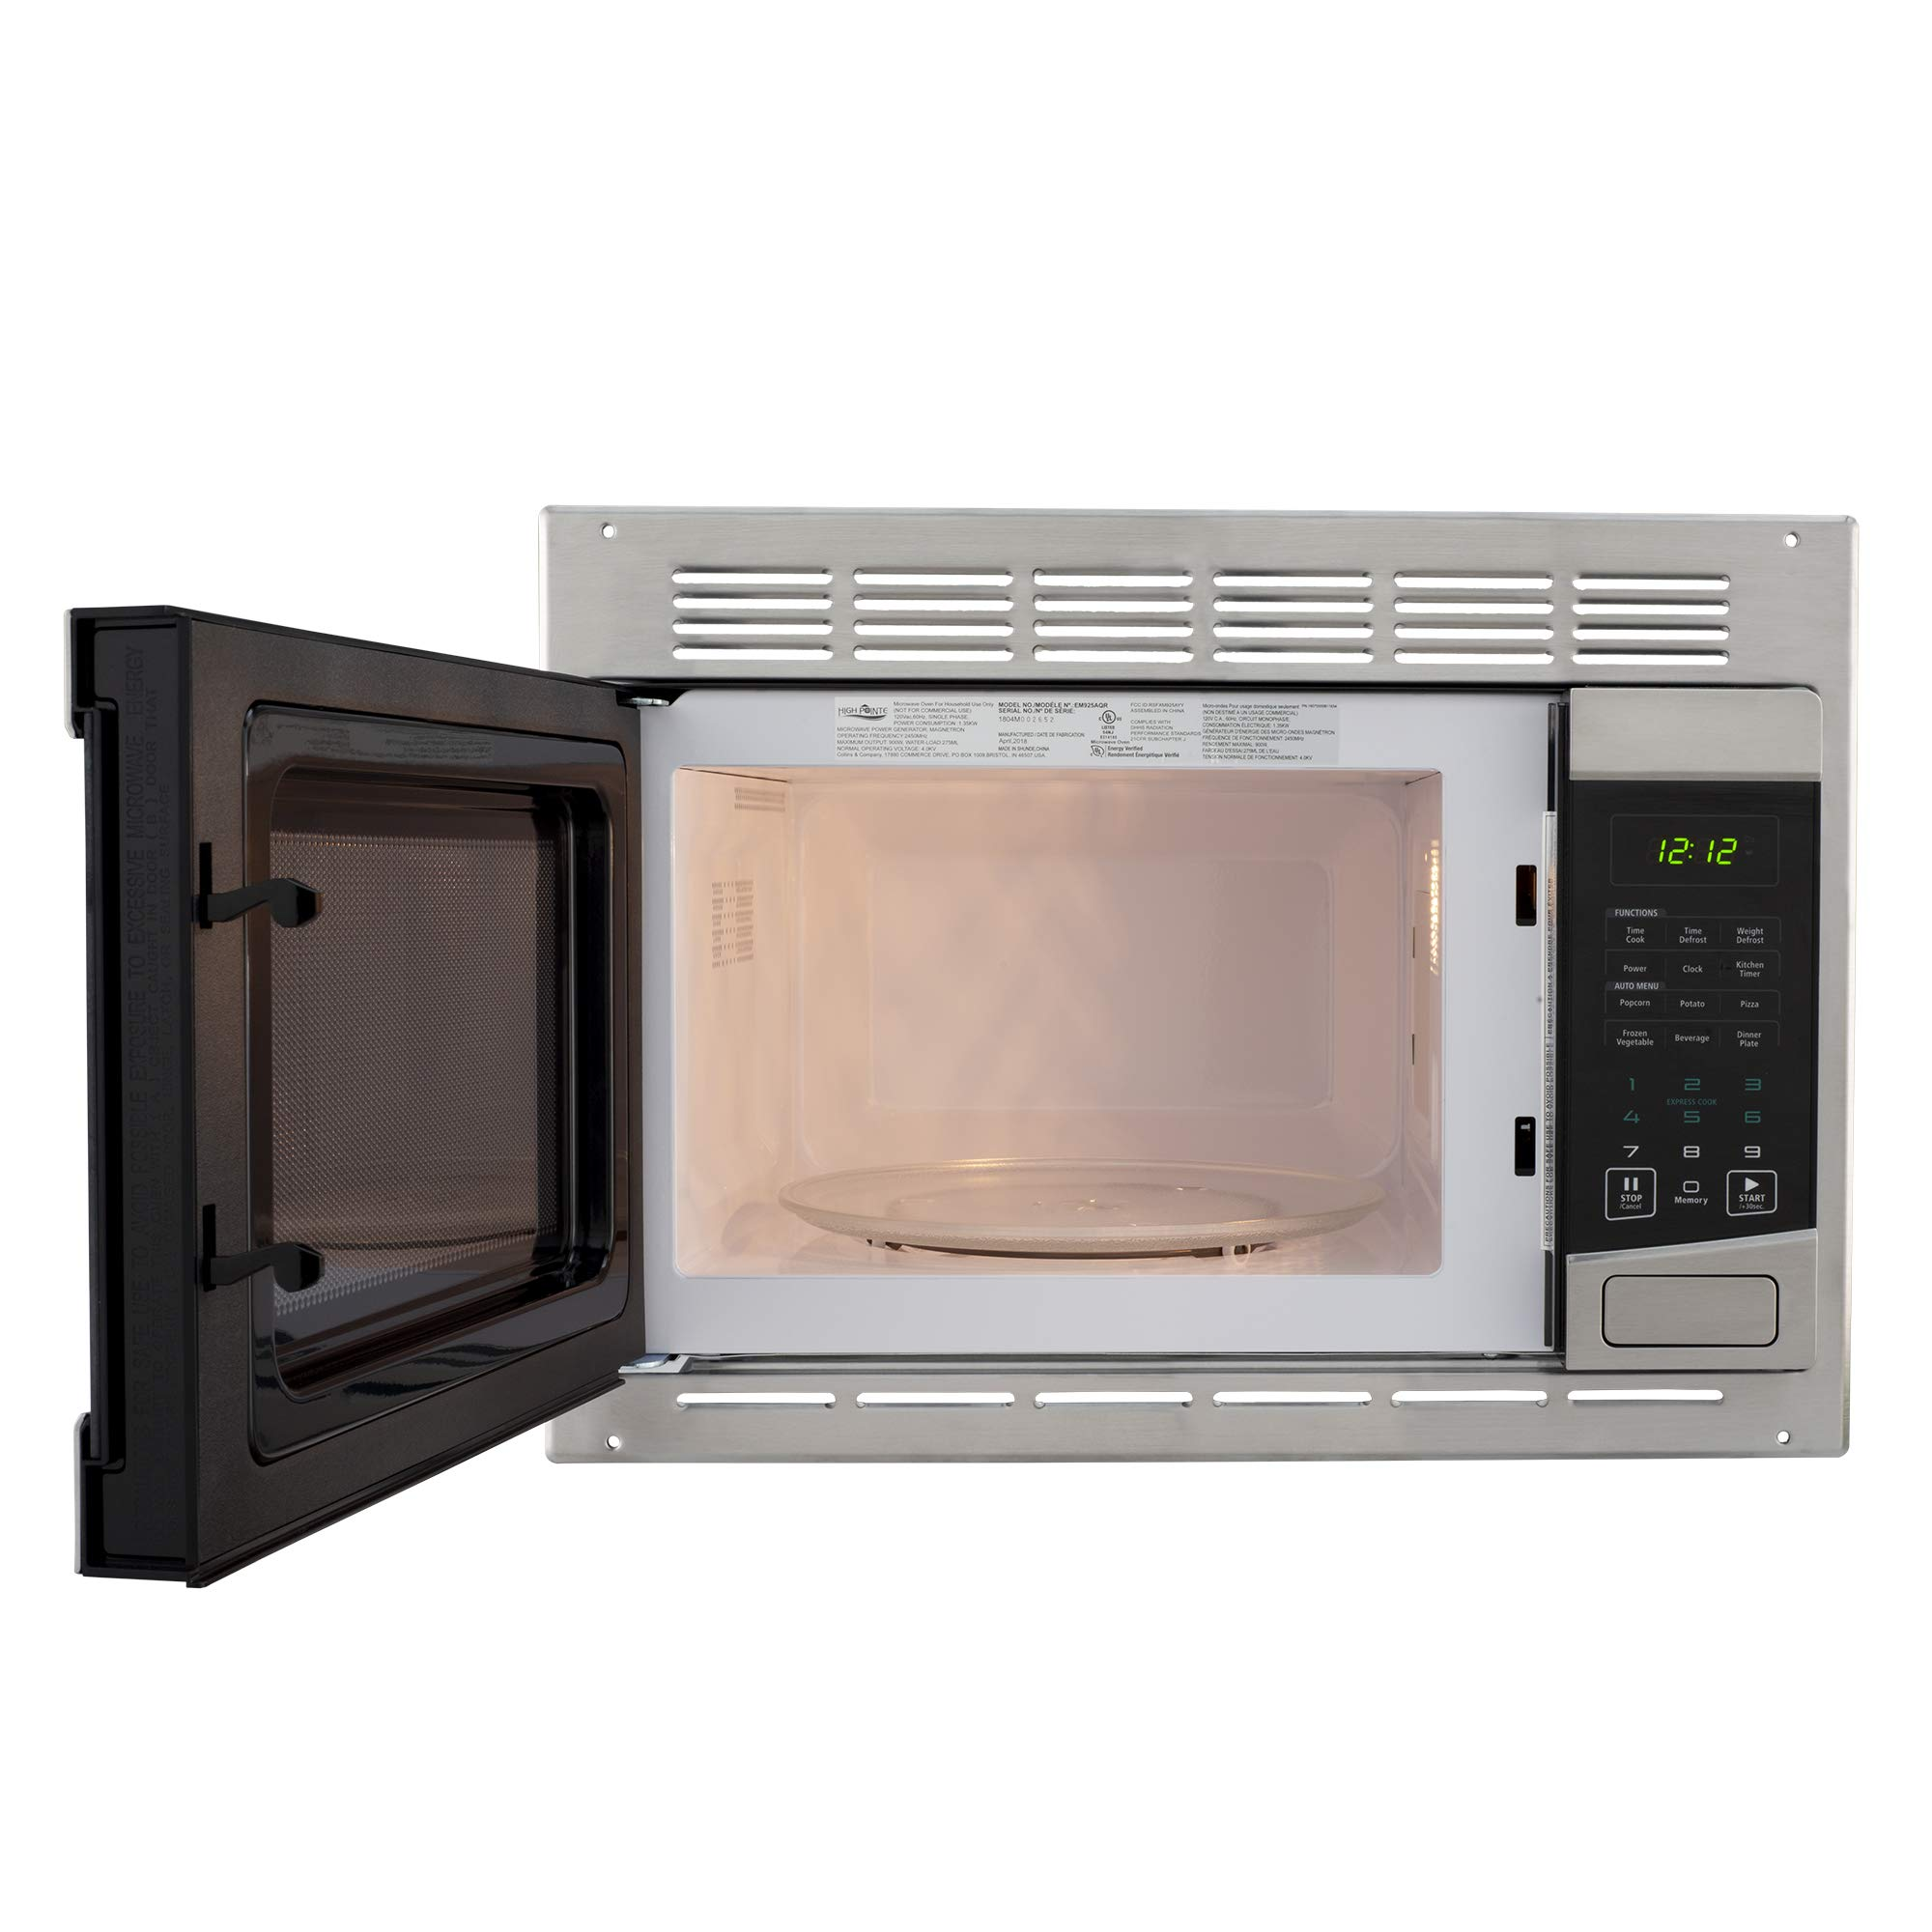 RecPro RV Stainless-Steel Microwave 1.0 cu ft. With Trim Package EM925AQR-S by RecPro (Image #3)